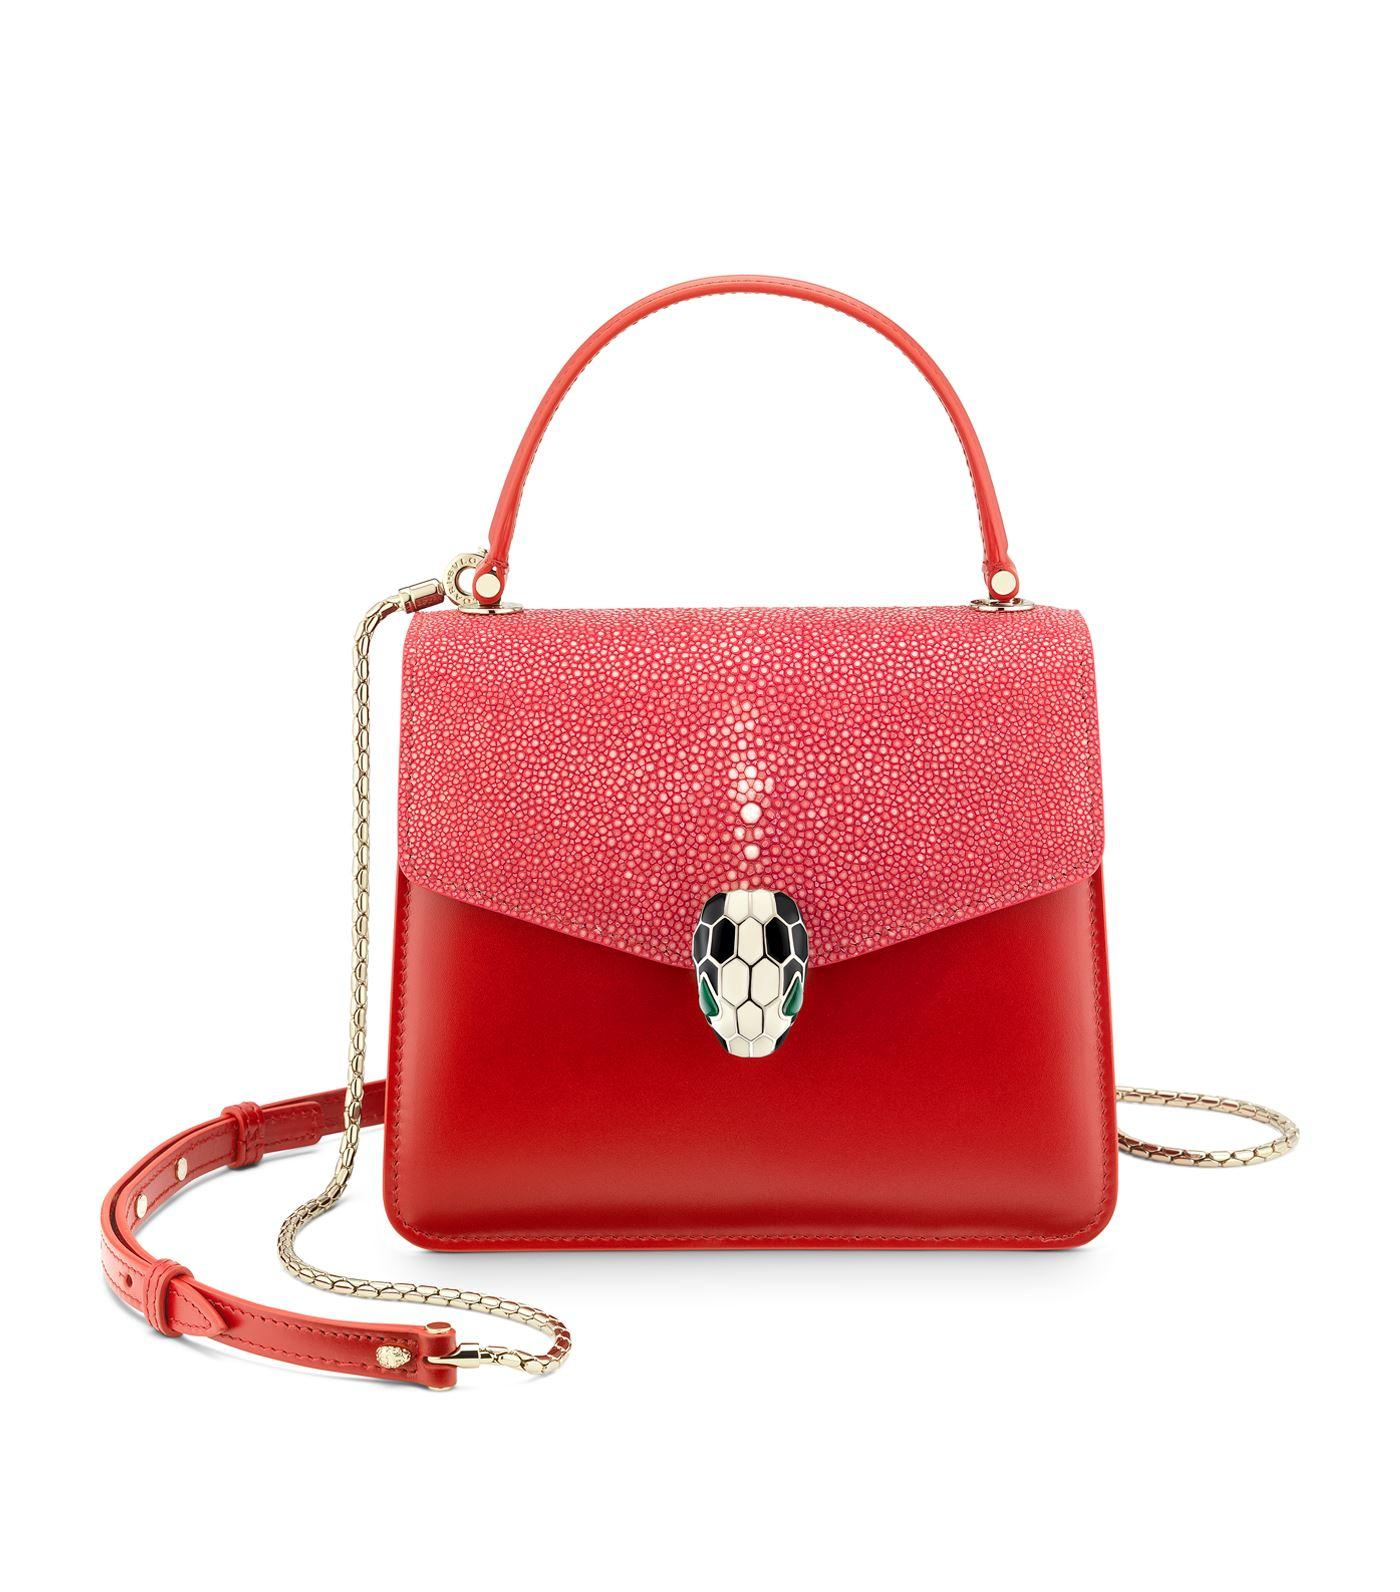 209a645fcb81 BVLGARI Galuchat Serpenti Forever Top Handle Bag in Red - Lyst